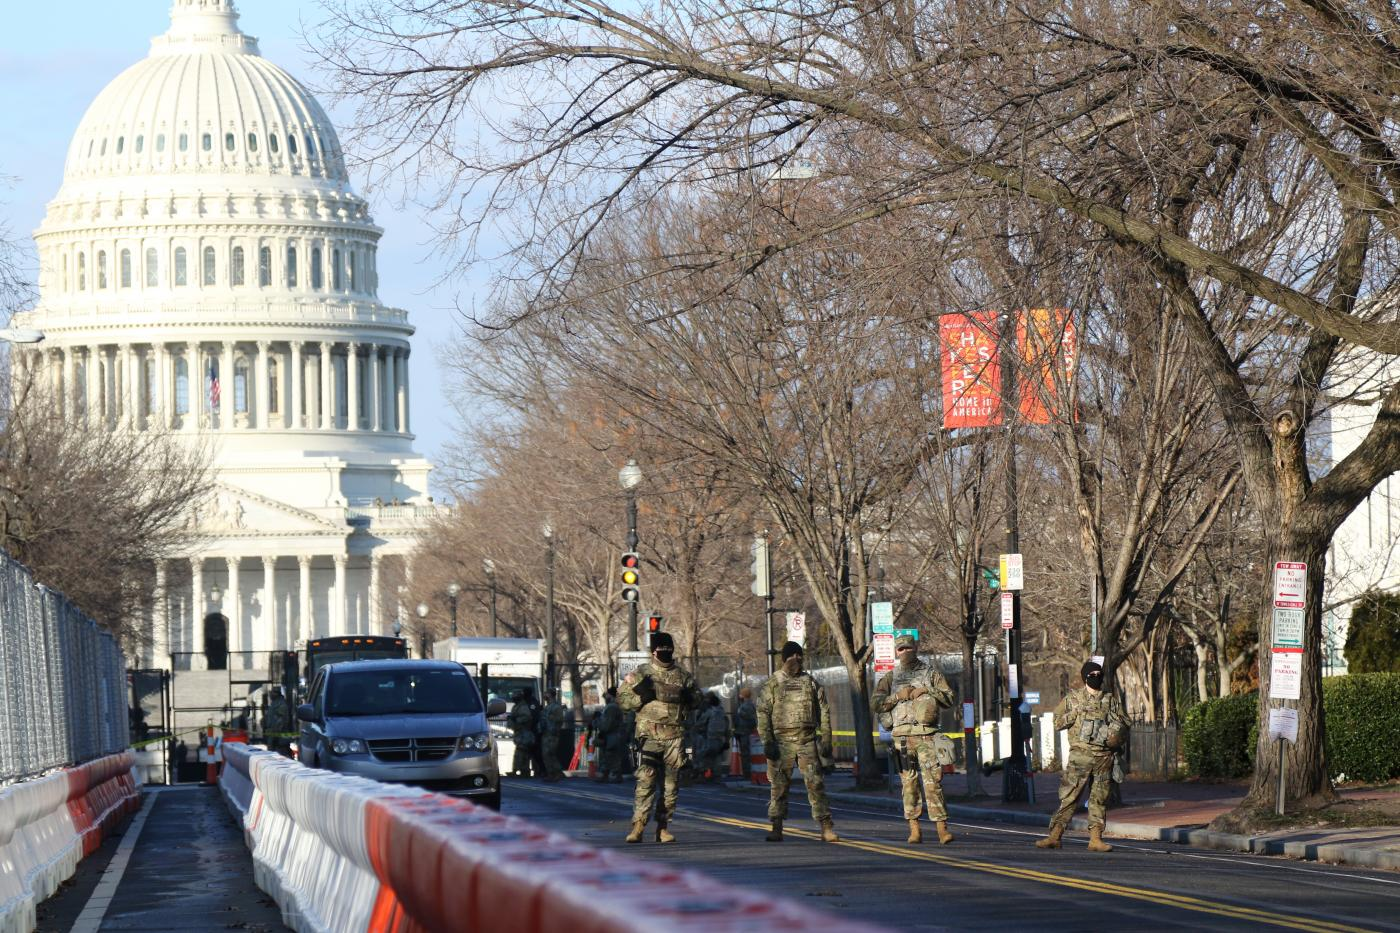 National Guard members are stationed several hundred feet from the US Capitol building.